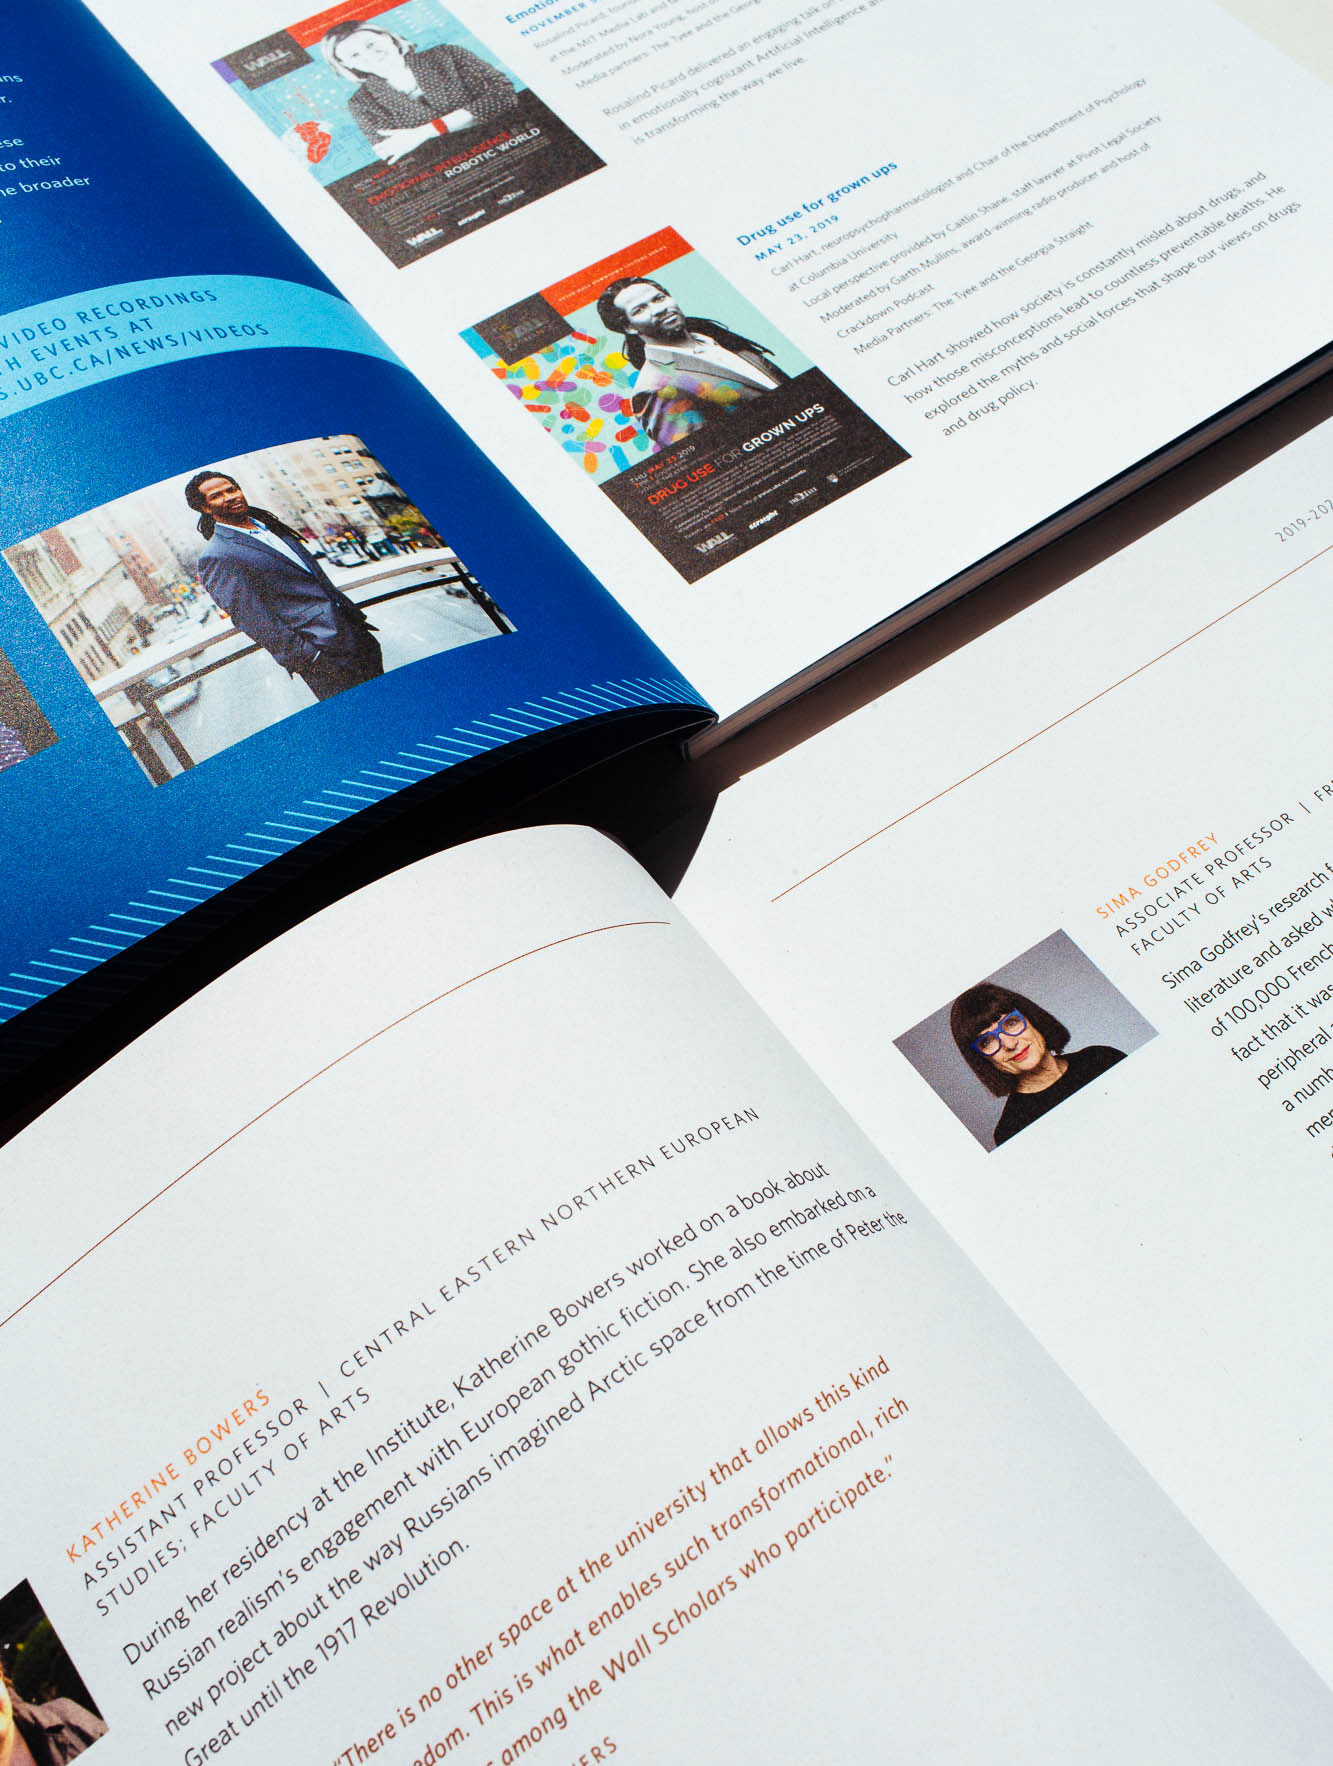 Design Details for Peter Wall Institute For Advanced studies printed layout of Annual Report | www.alicia-carvalho.com